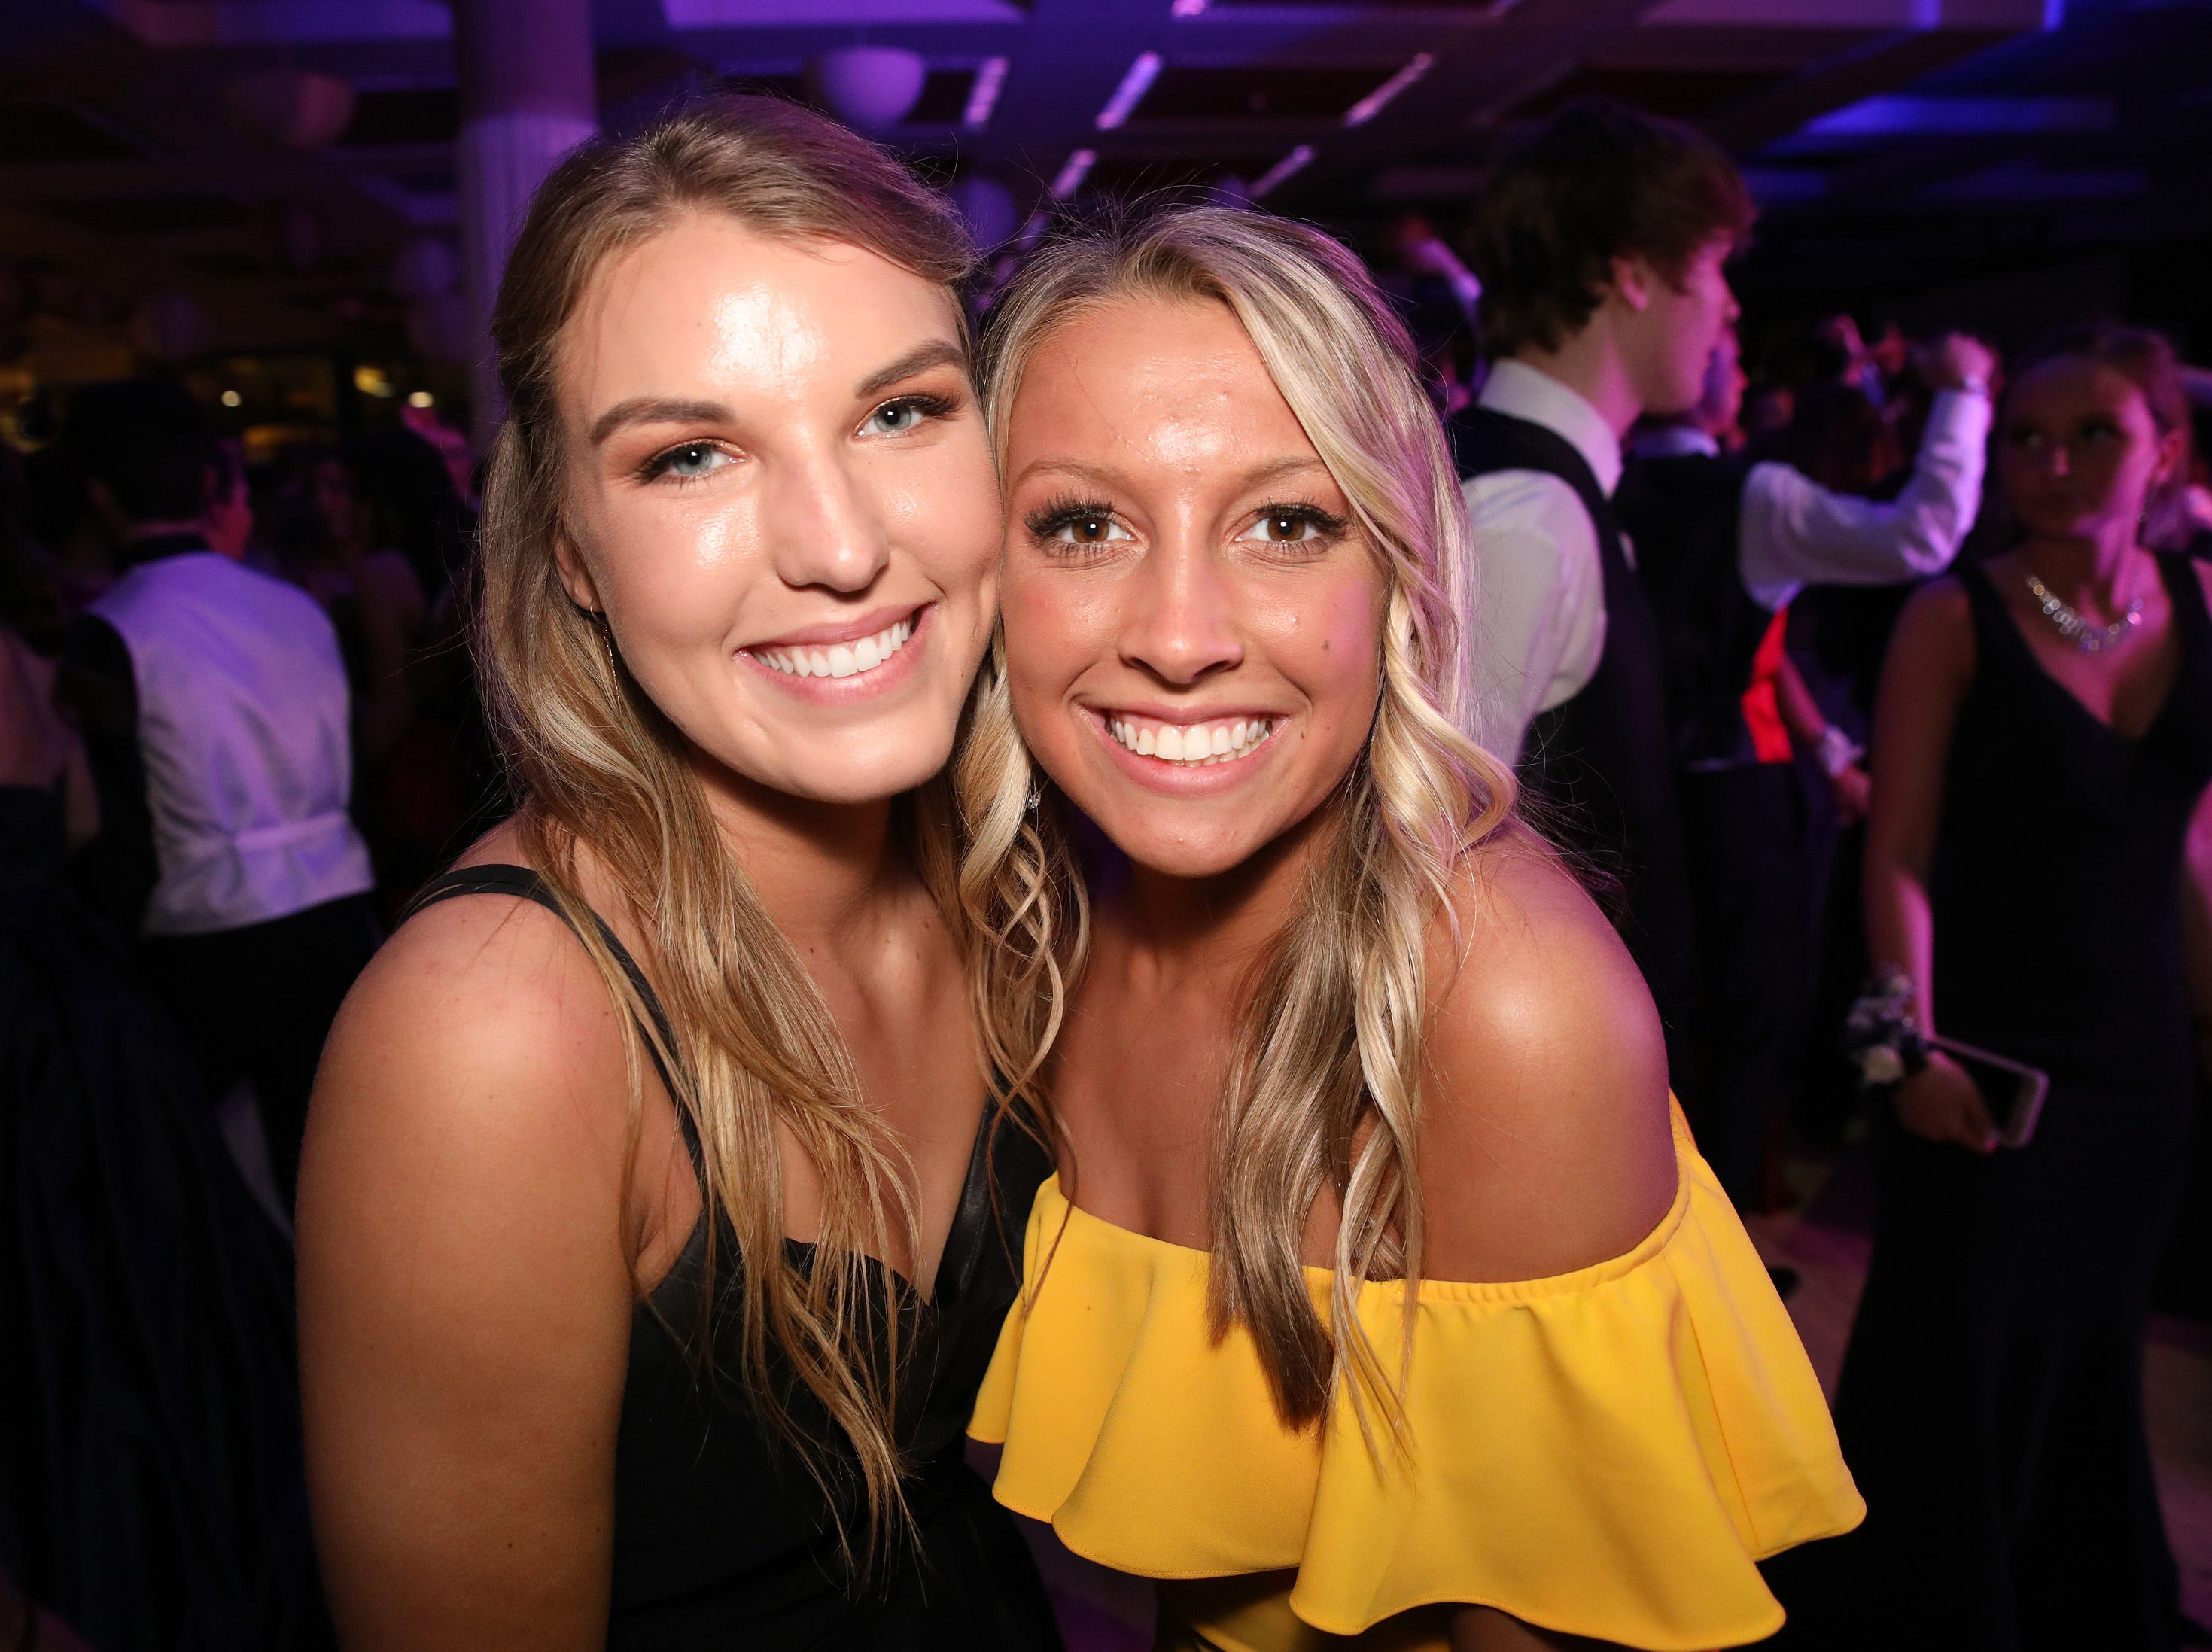 Senior Taryn Lindaman, and graduate Payton Enga stop for a picture during the Ankeny Centennial High School prom at the State Historical Building in Des Moines on Saturday, April 13, 2019.